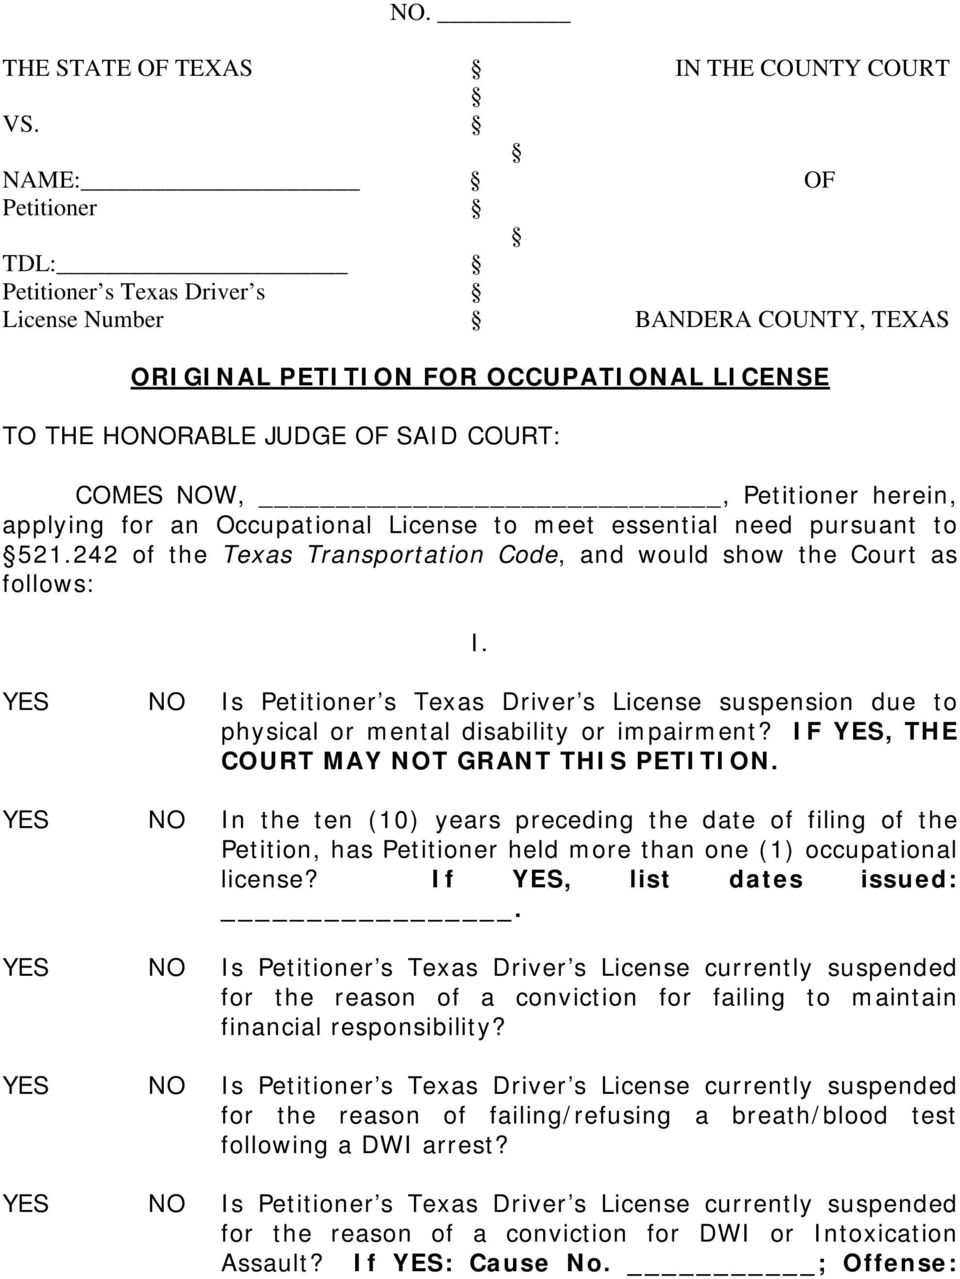 OCCUPATIONAL DRIVER S LICENSE SUSPENDED OR REVOKED DRIVER S